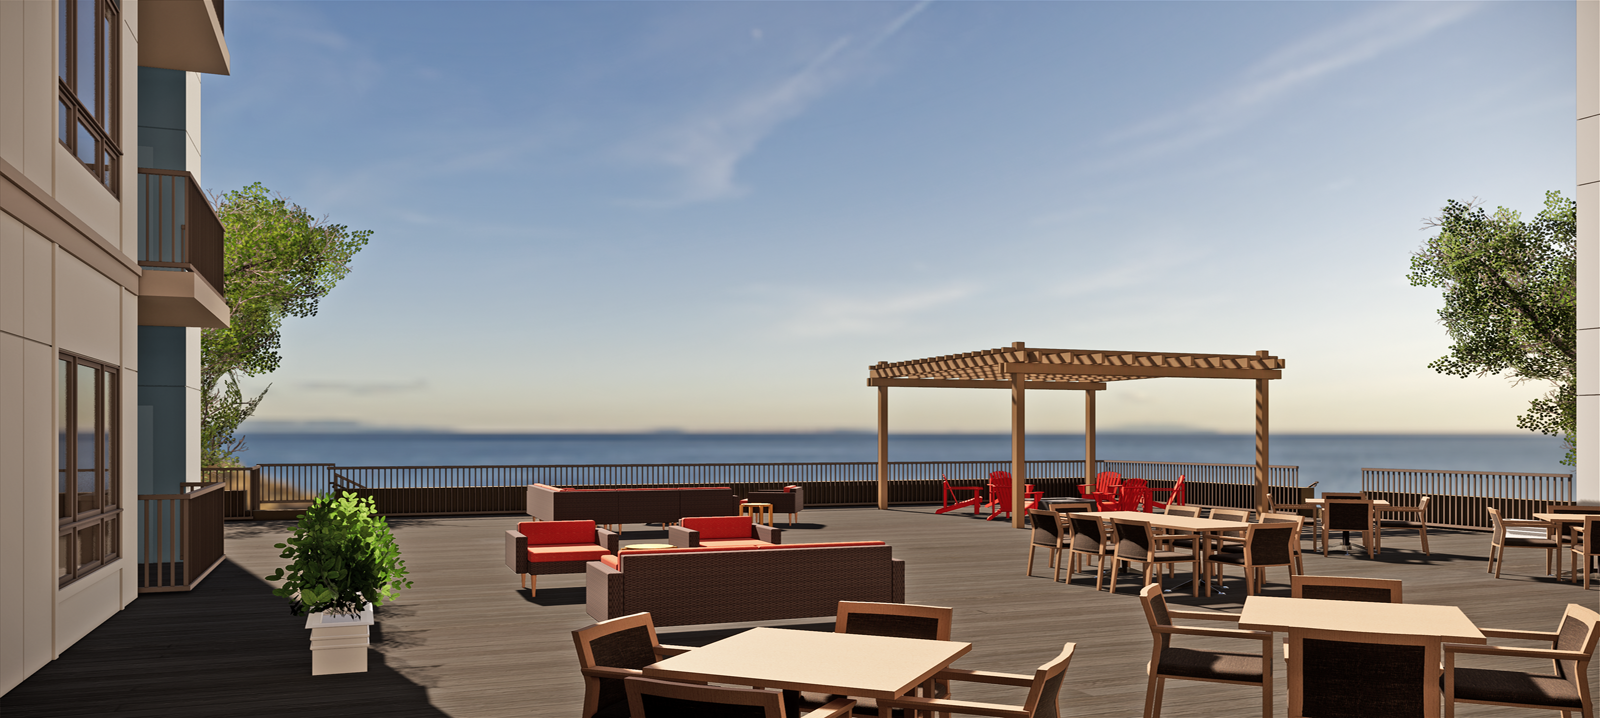 Community Terrace overlooking Lake Superior